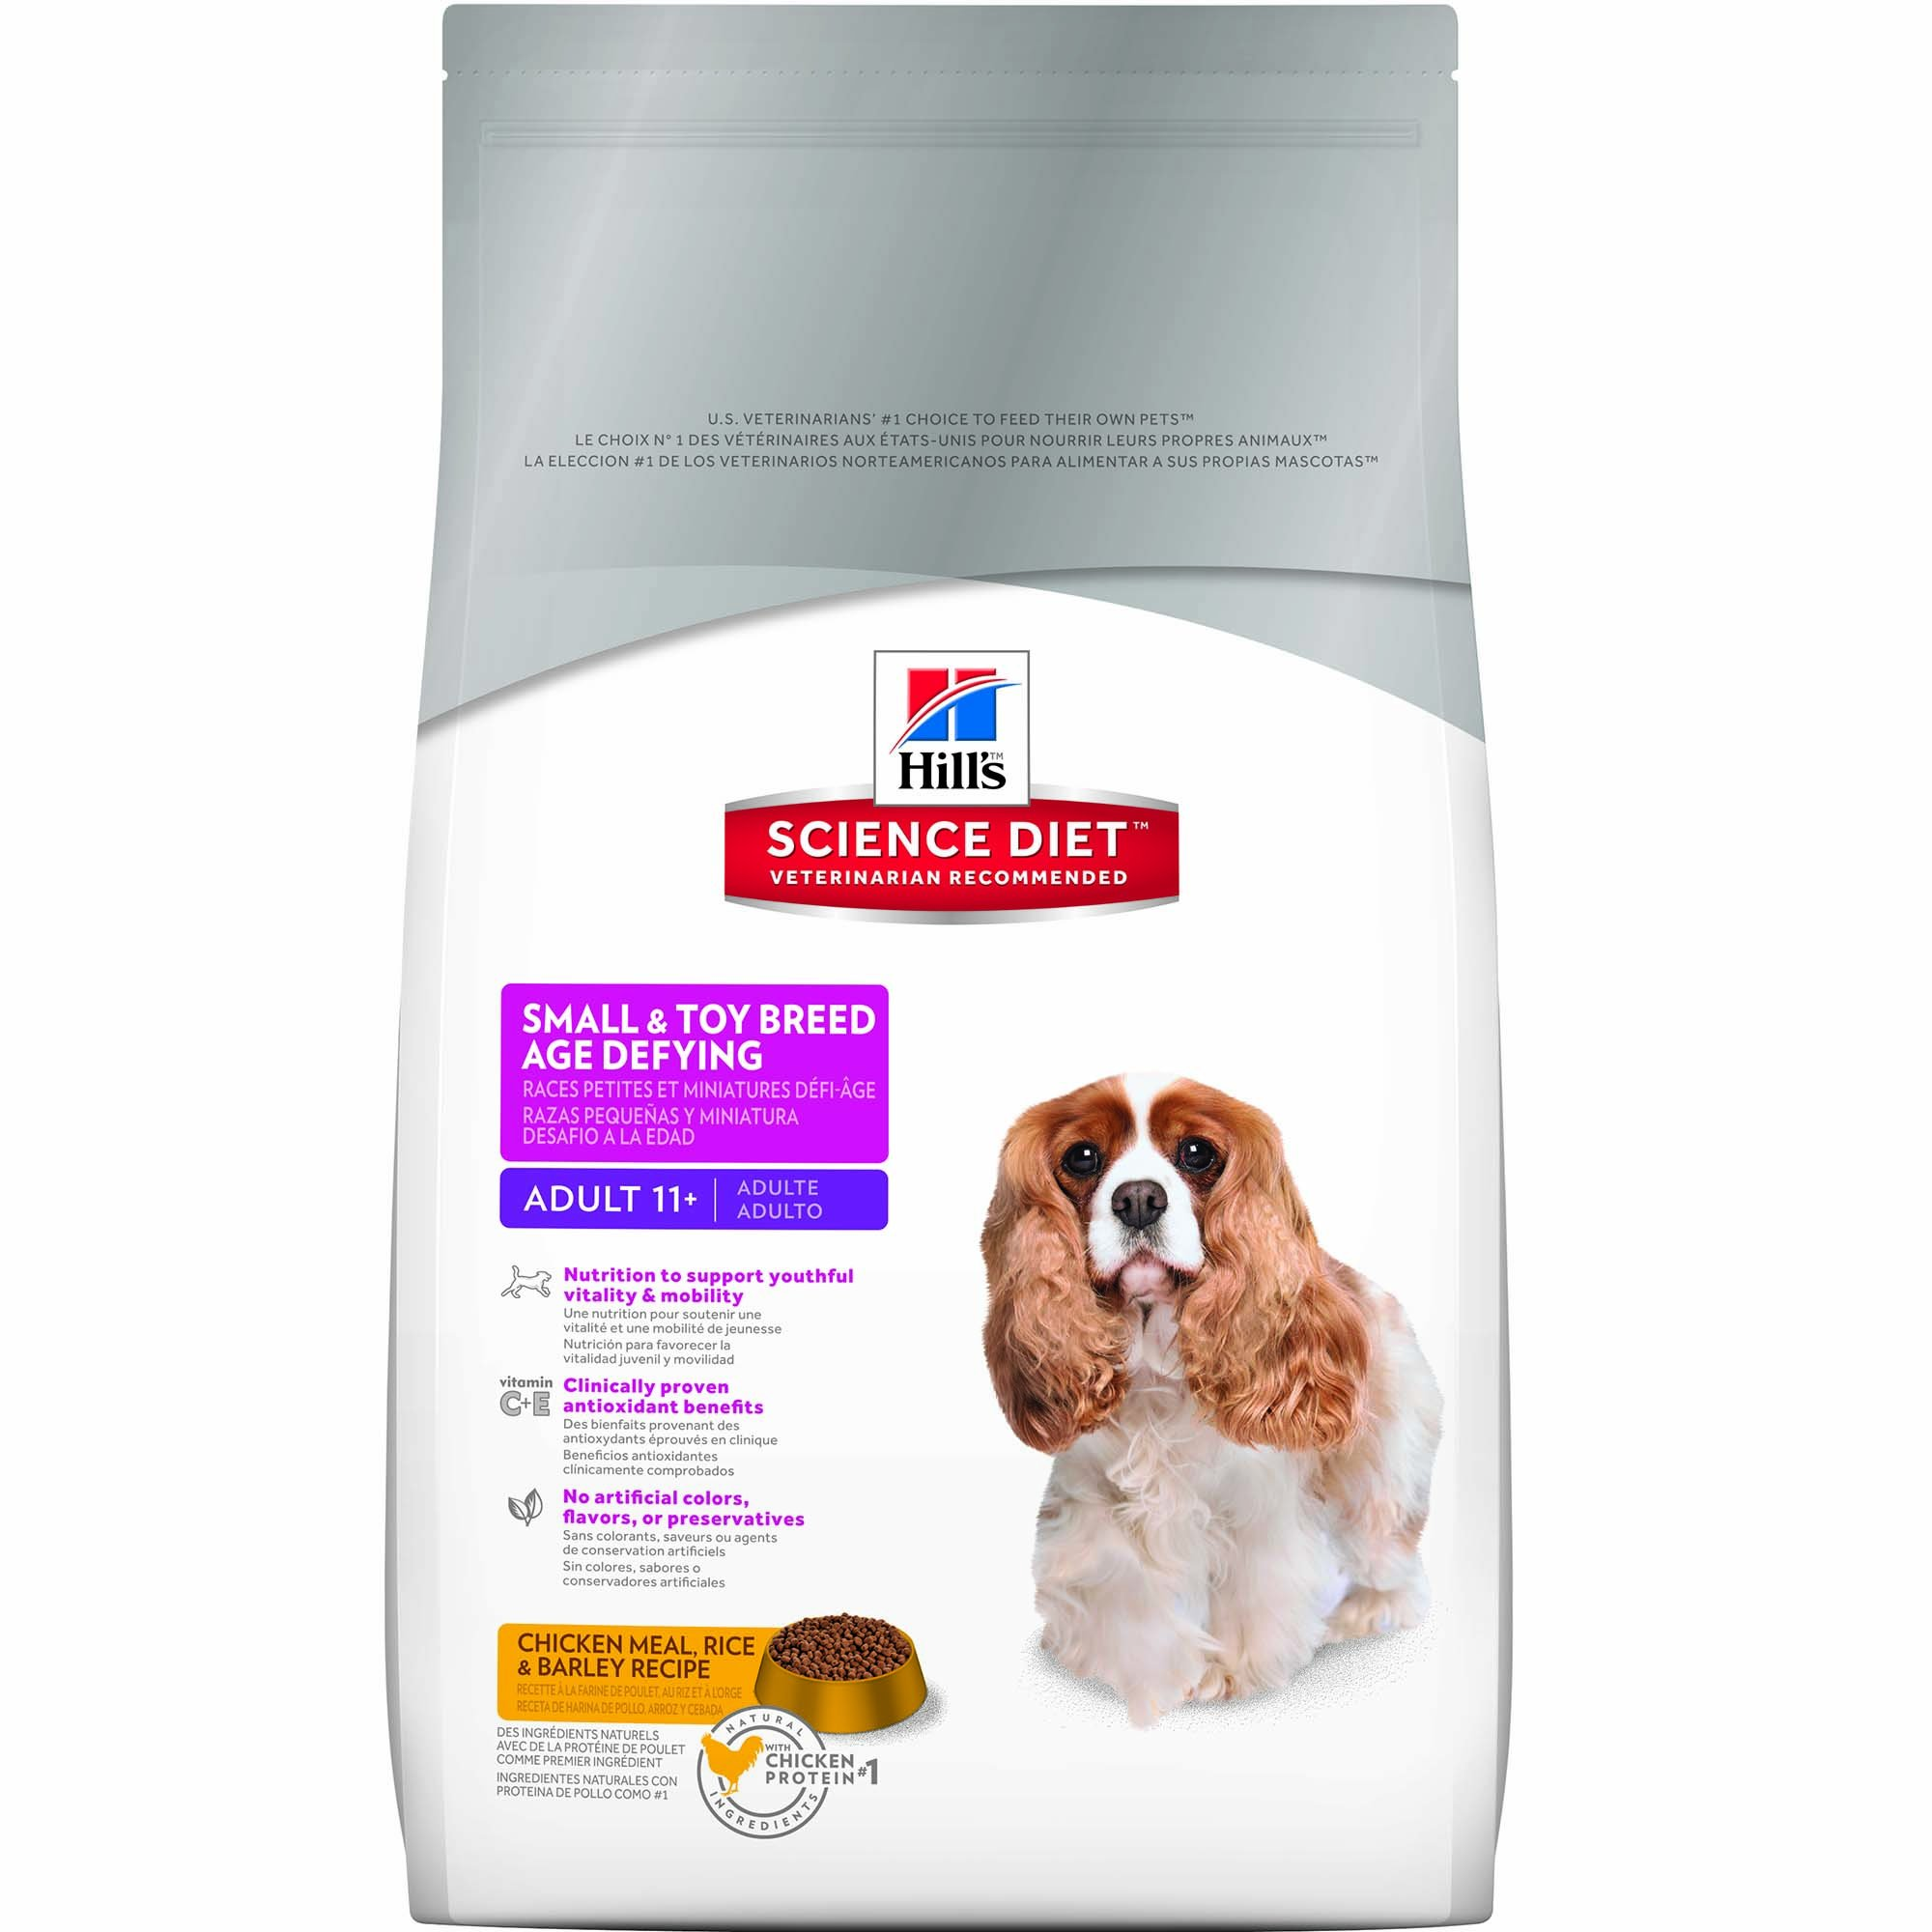 Hill's Science Diet Senior Dog Food, Adult 11+ Small & Toy Breed Age Defying Chicken Meal Rice & Barley Recipe Dry Dog Food, 4.5 lb Bag